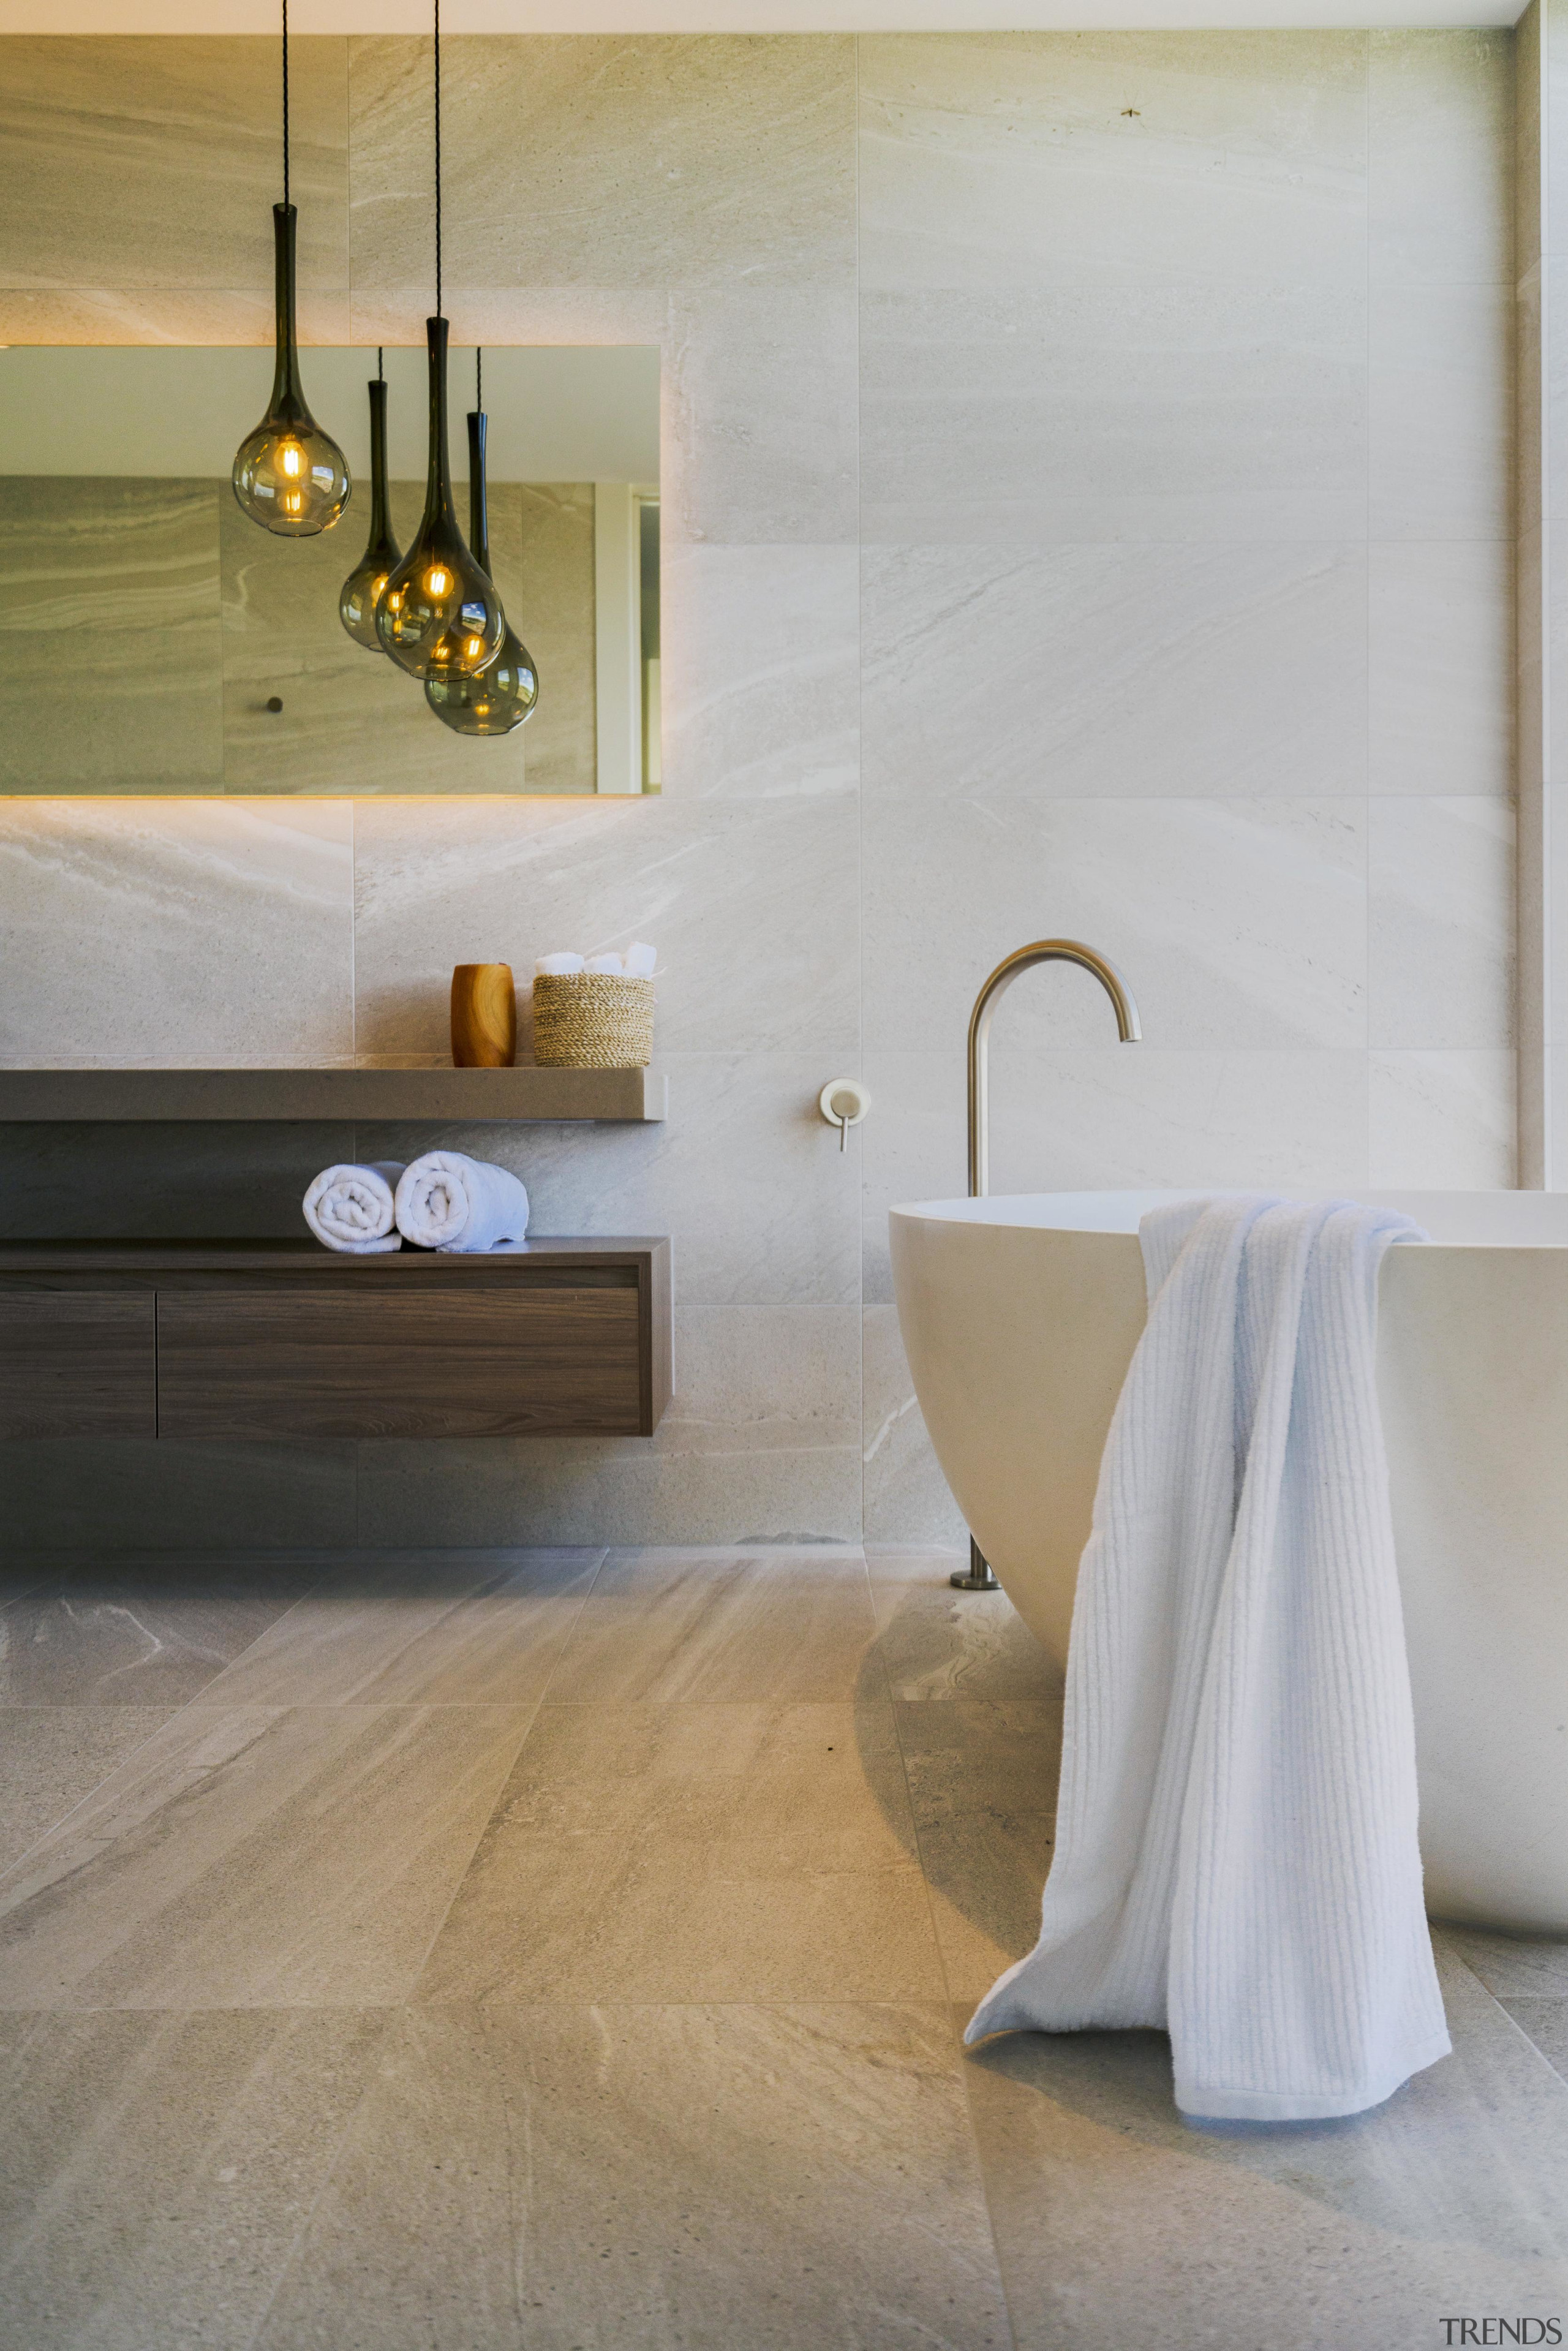 Large-format tiles with the look of veined marble gray